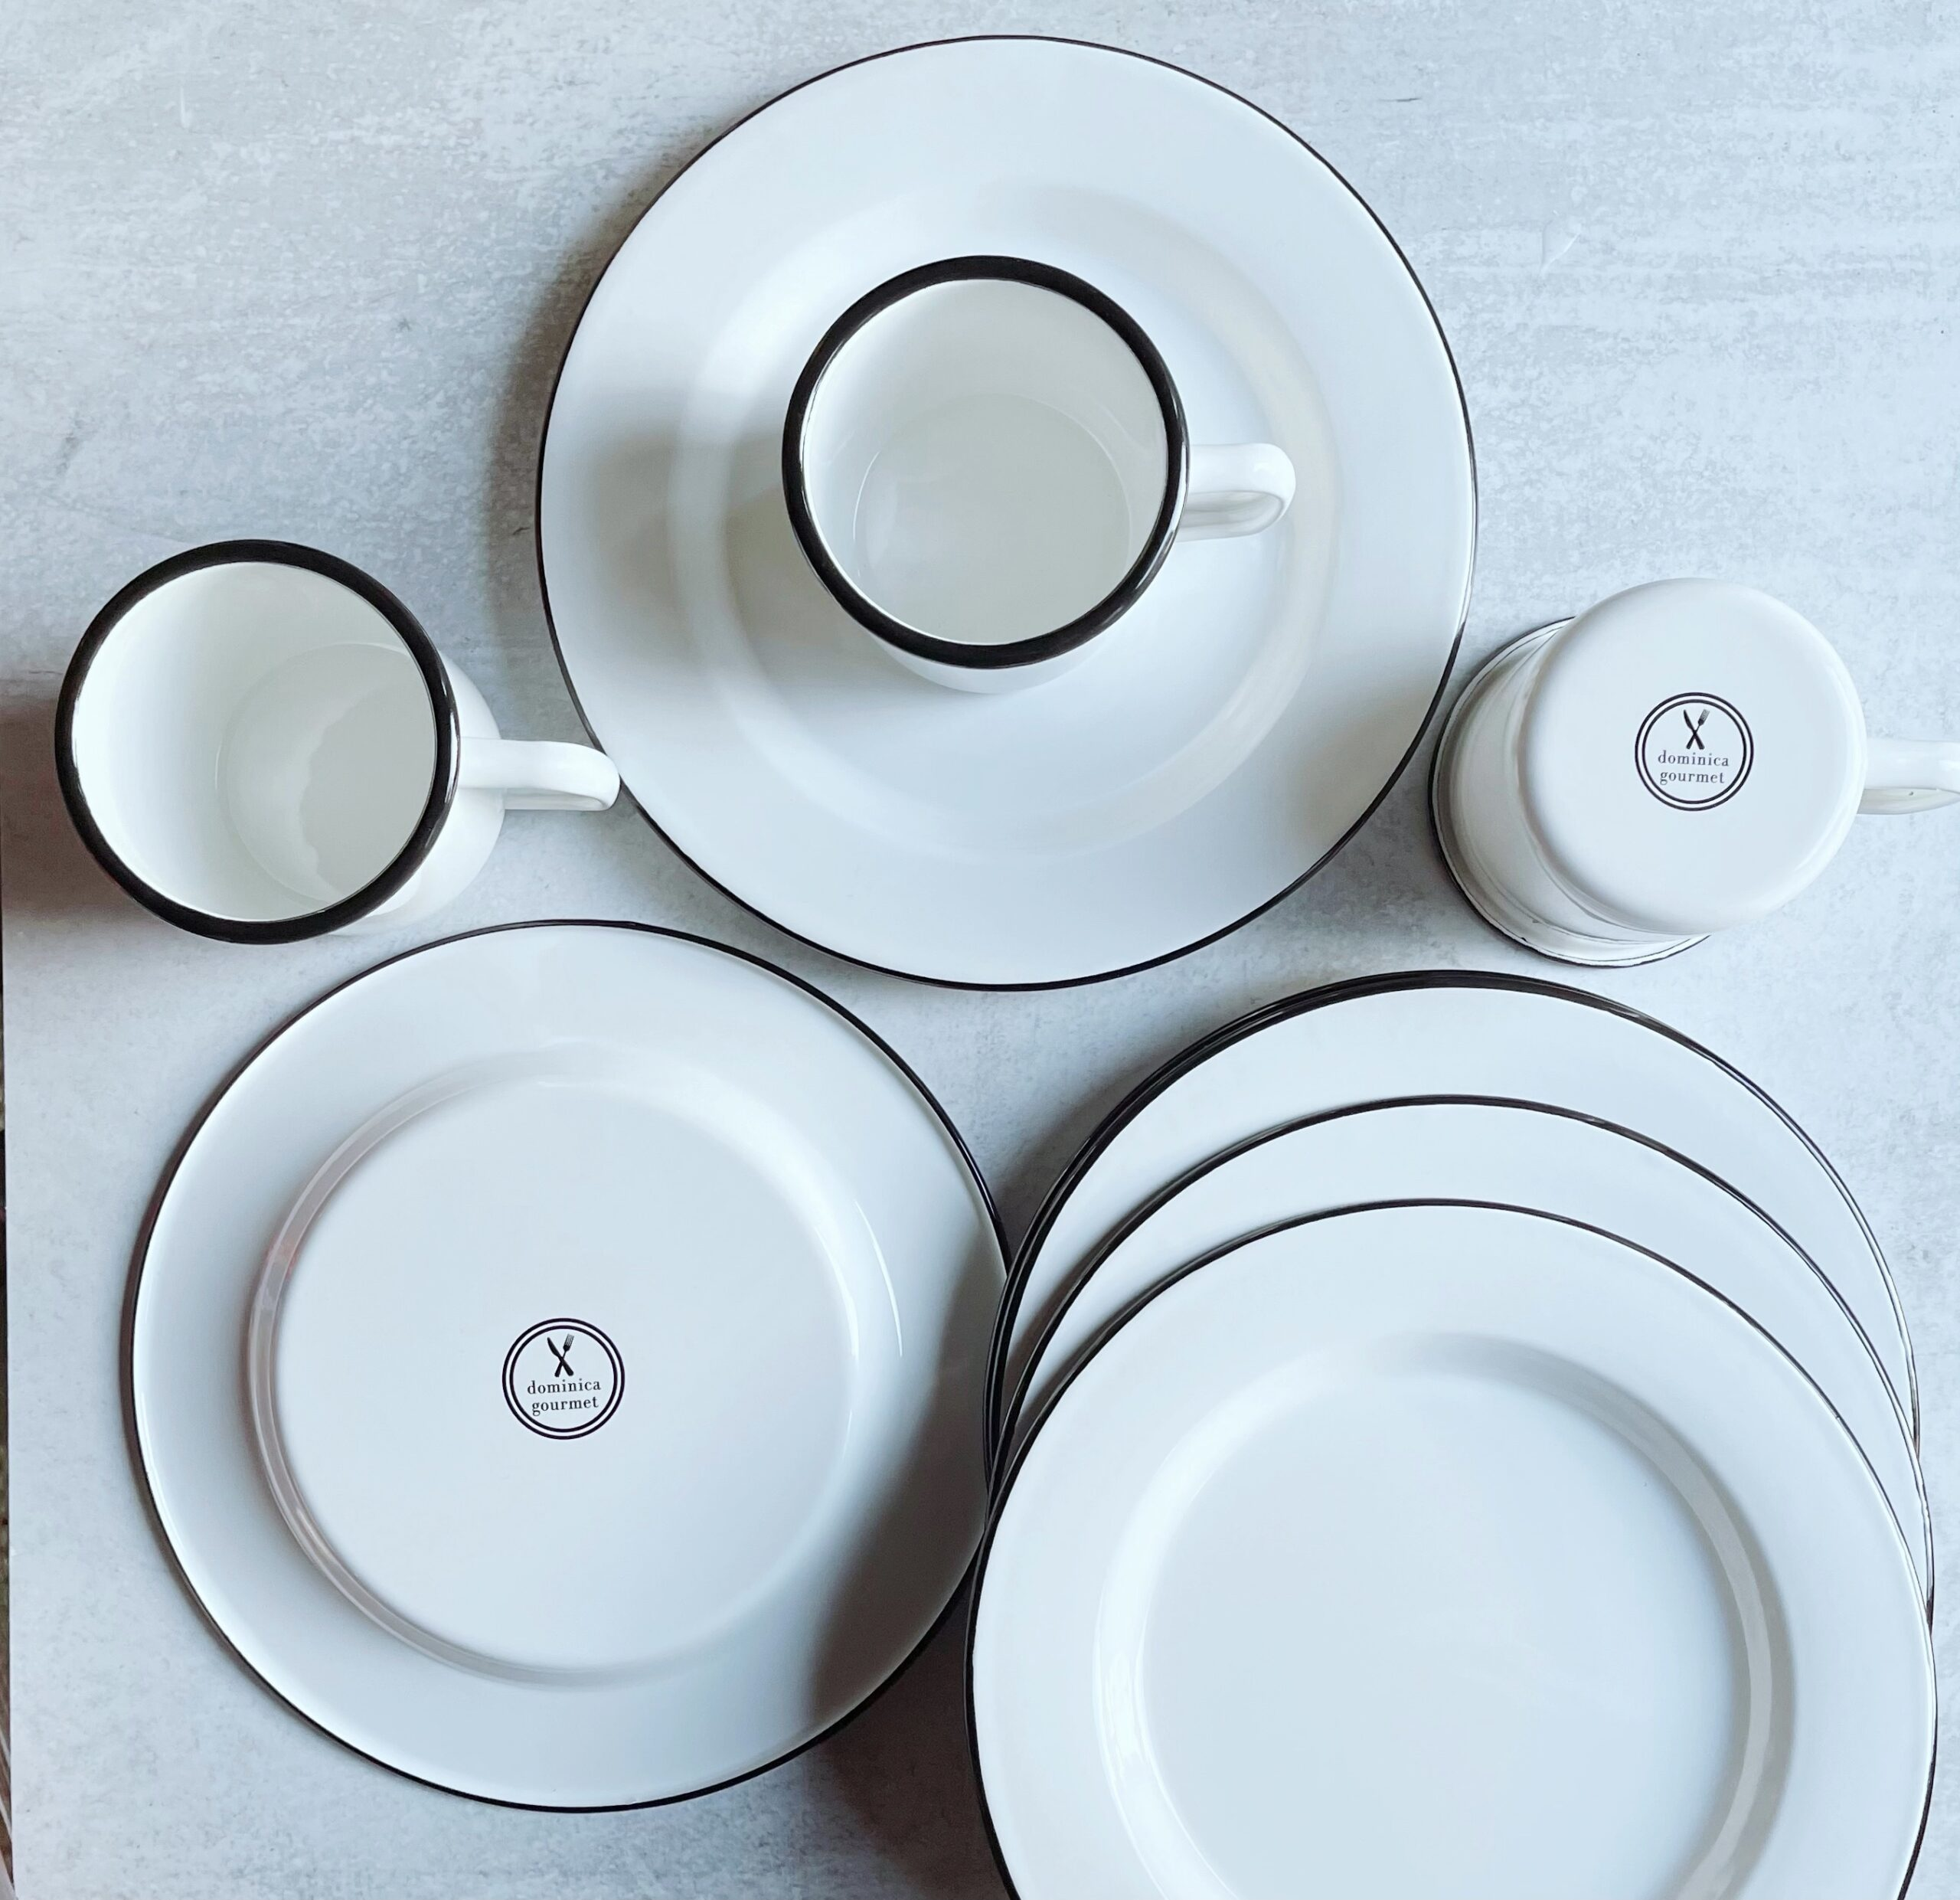 enamel-plates-and-cups